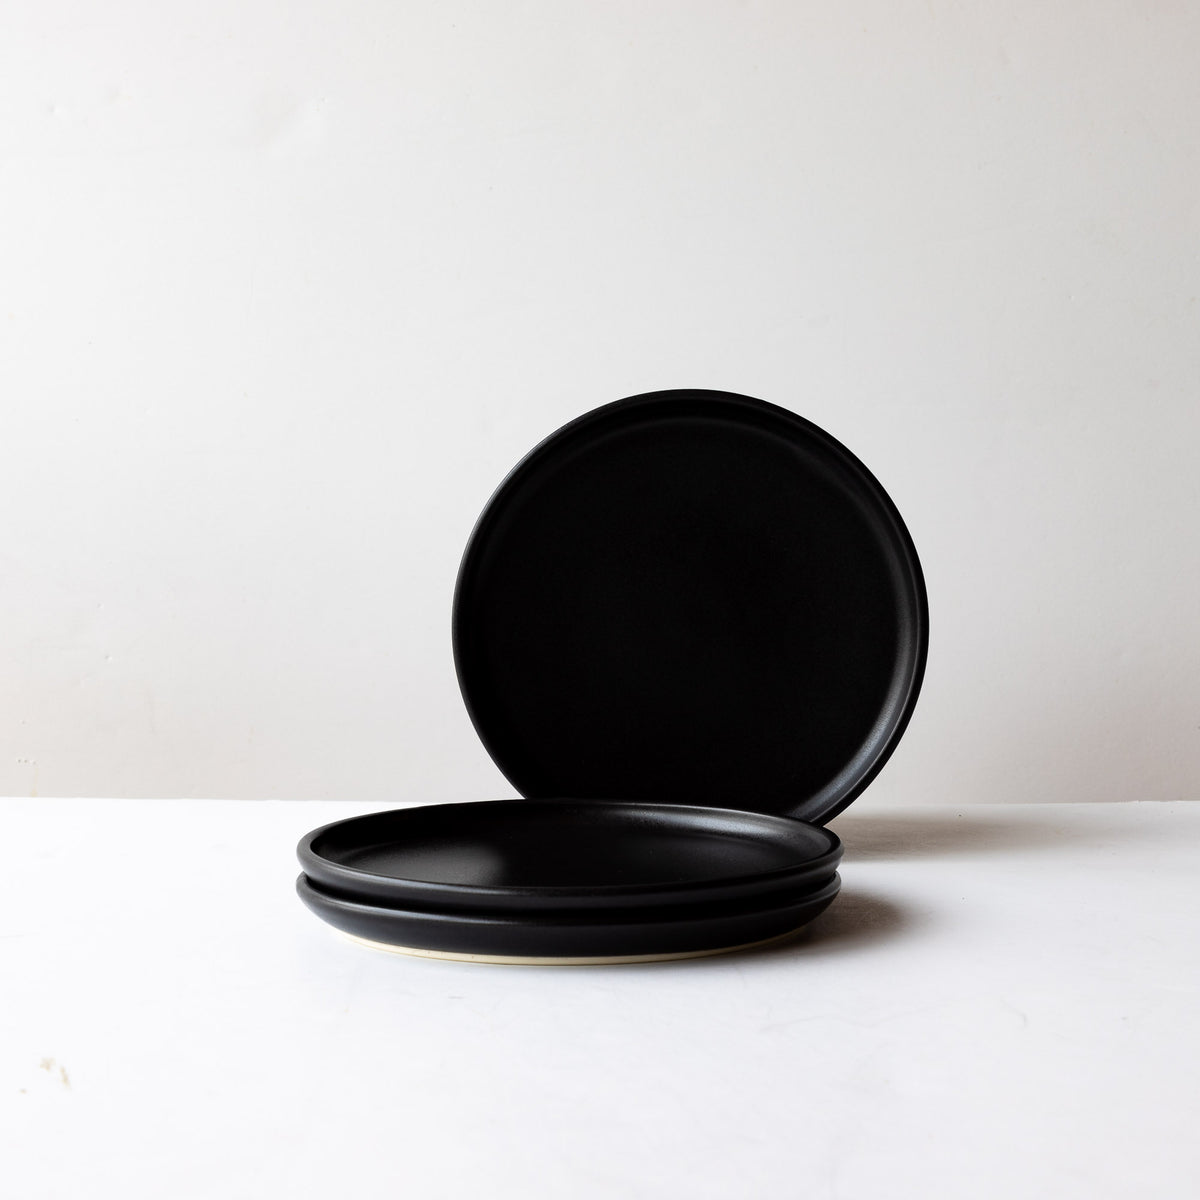 Three Black Satin Glaze Hand Thrown Small Porcelain Plates - Sold by Chic & Basta